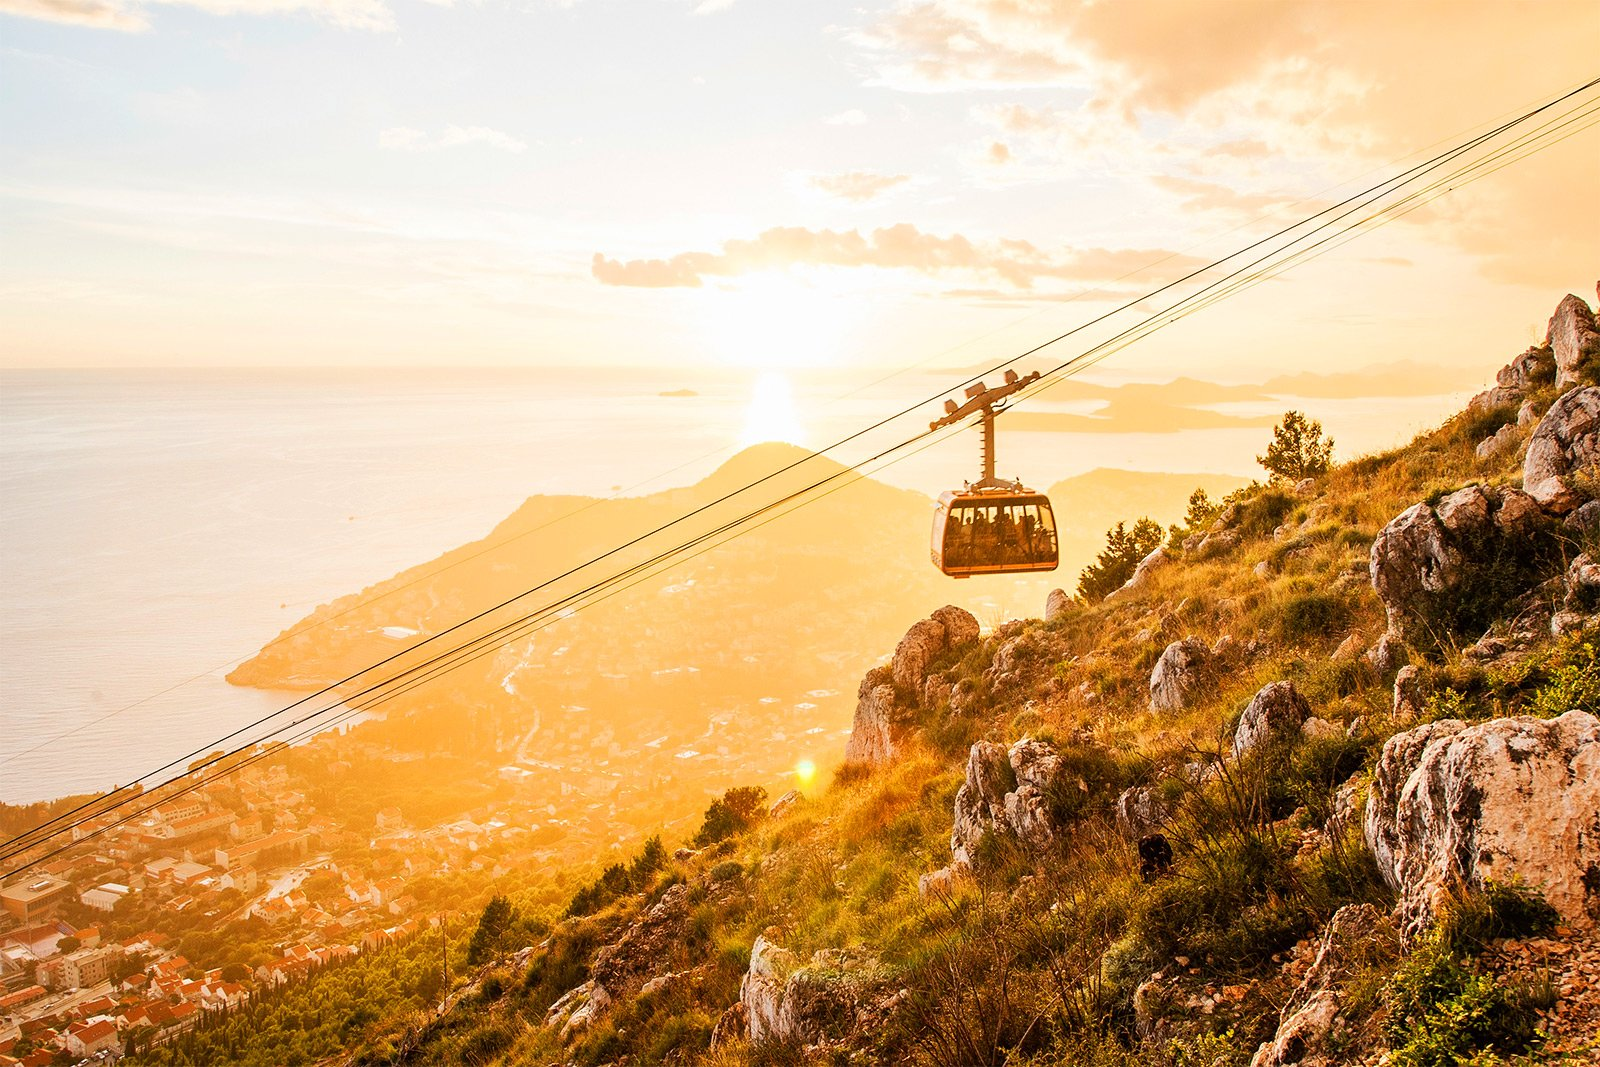 How to ride the Cable Car in Dubrovnik